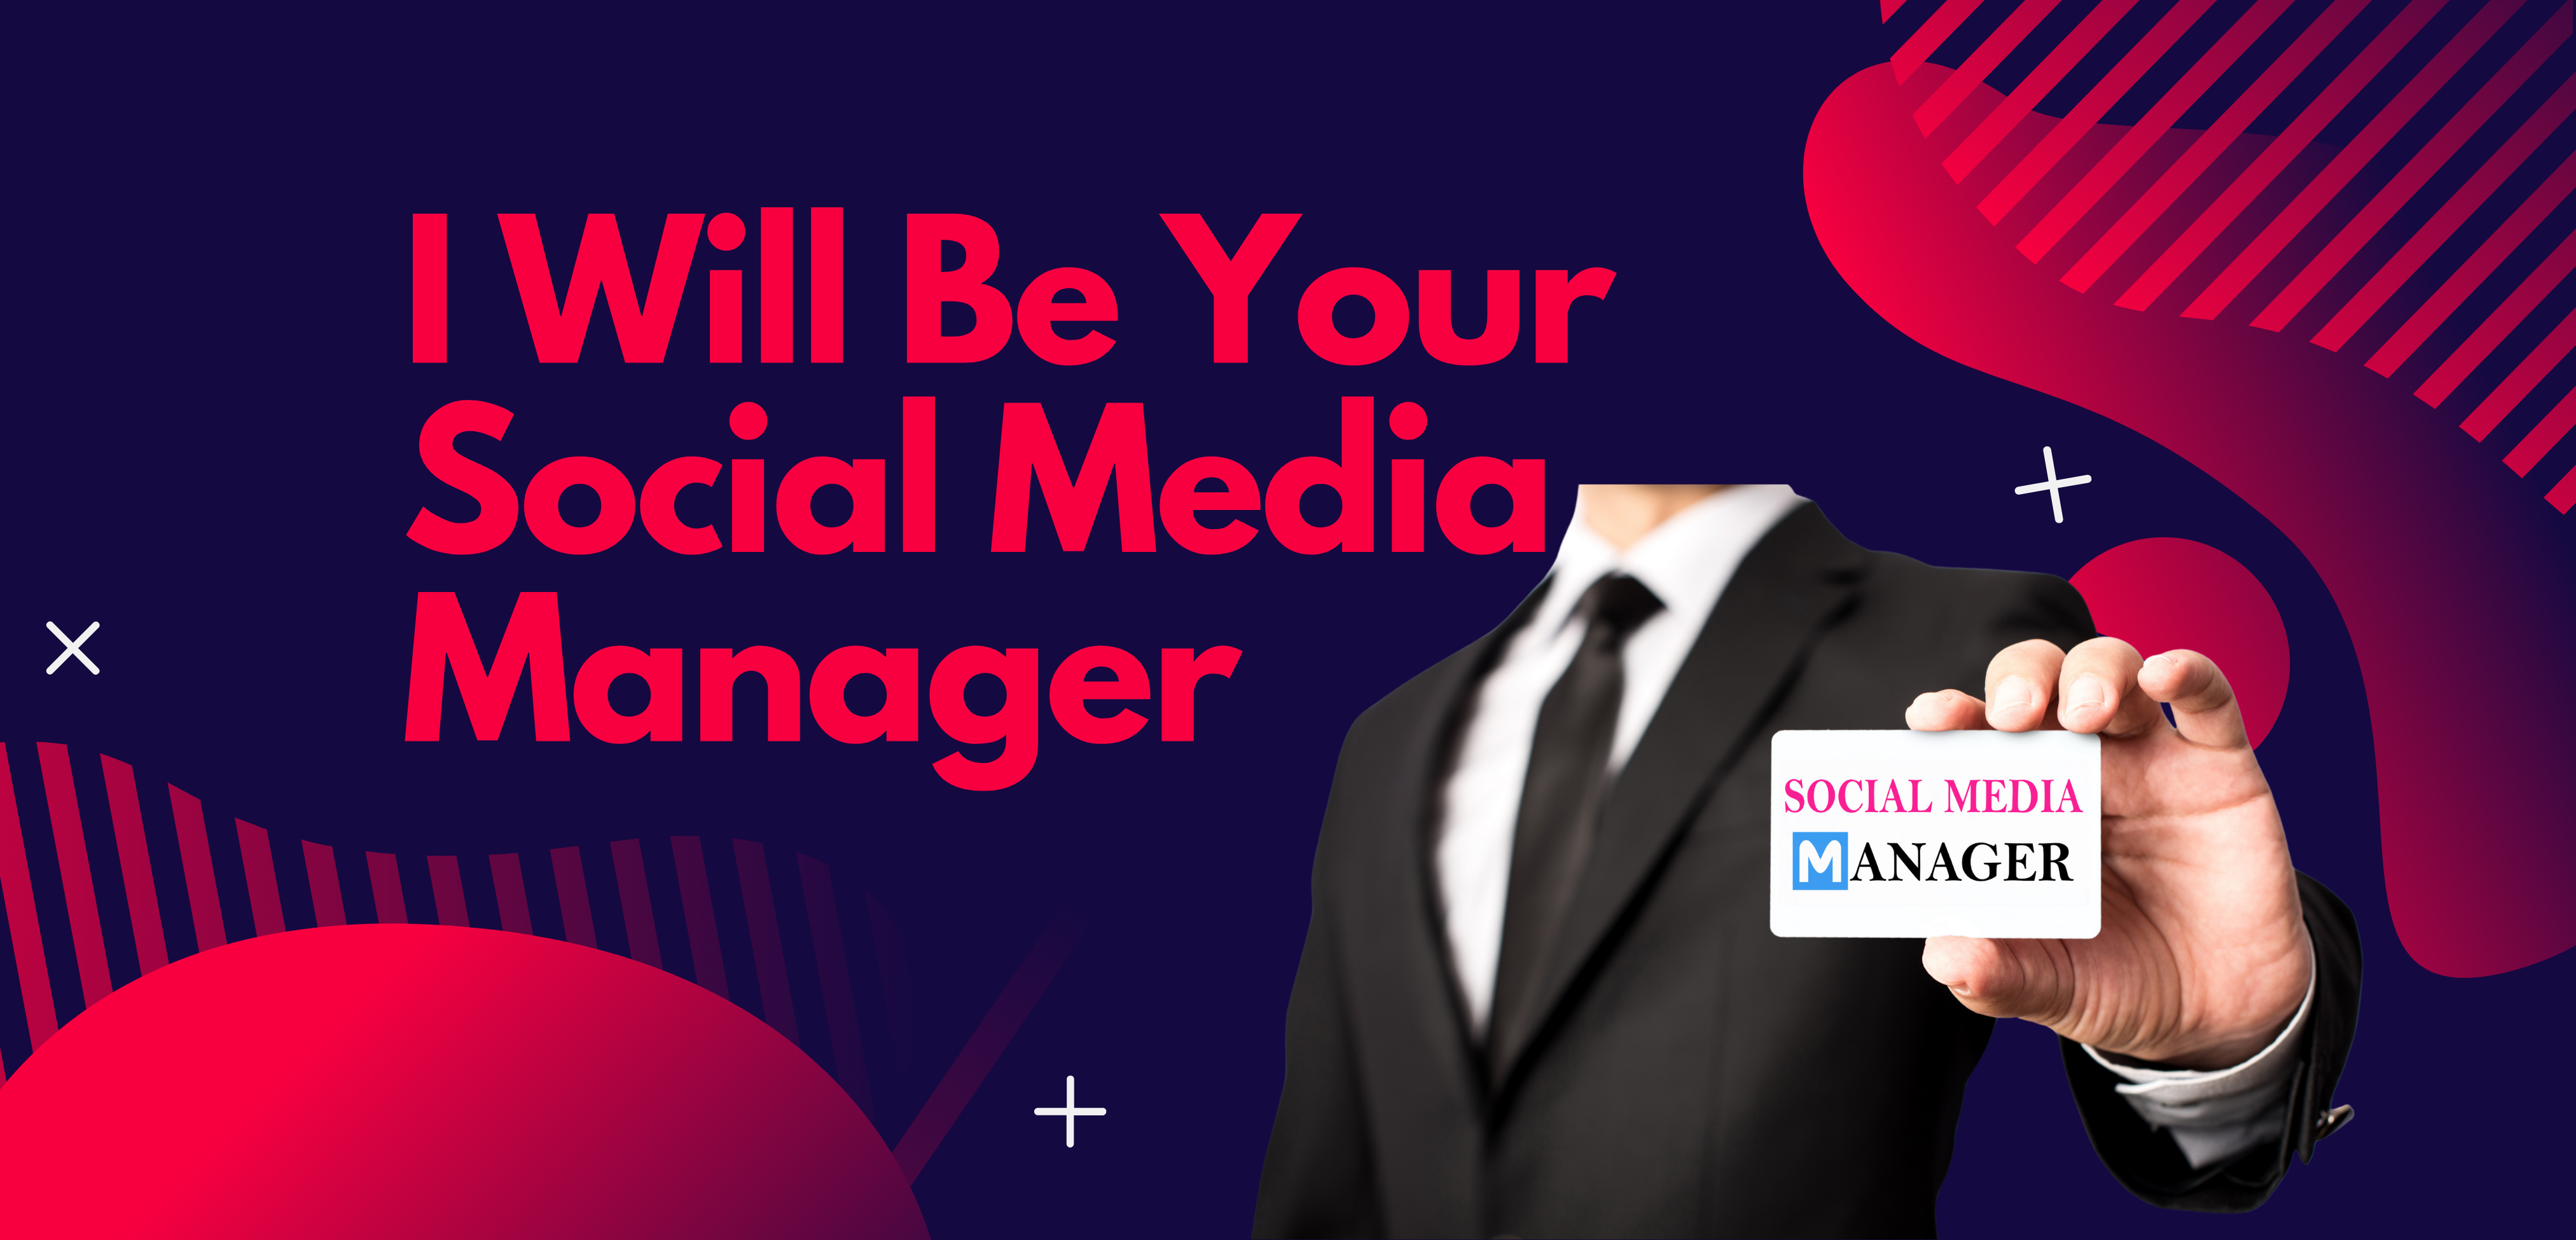 I will be your all social media manager